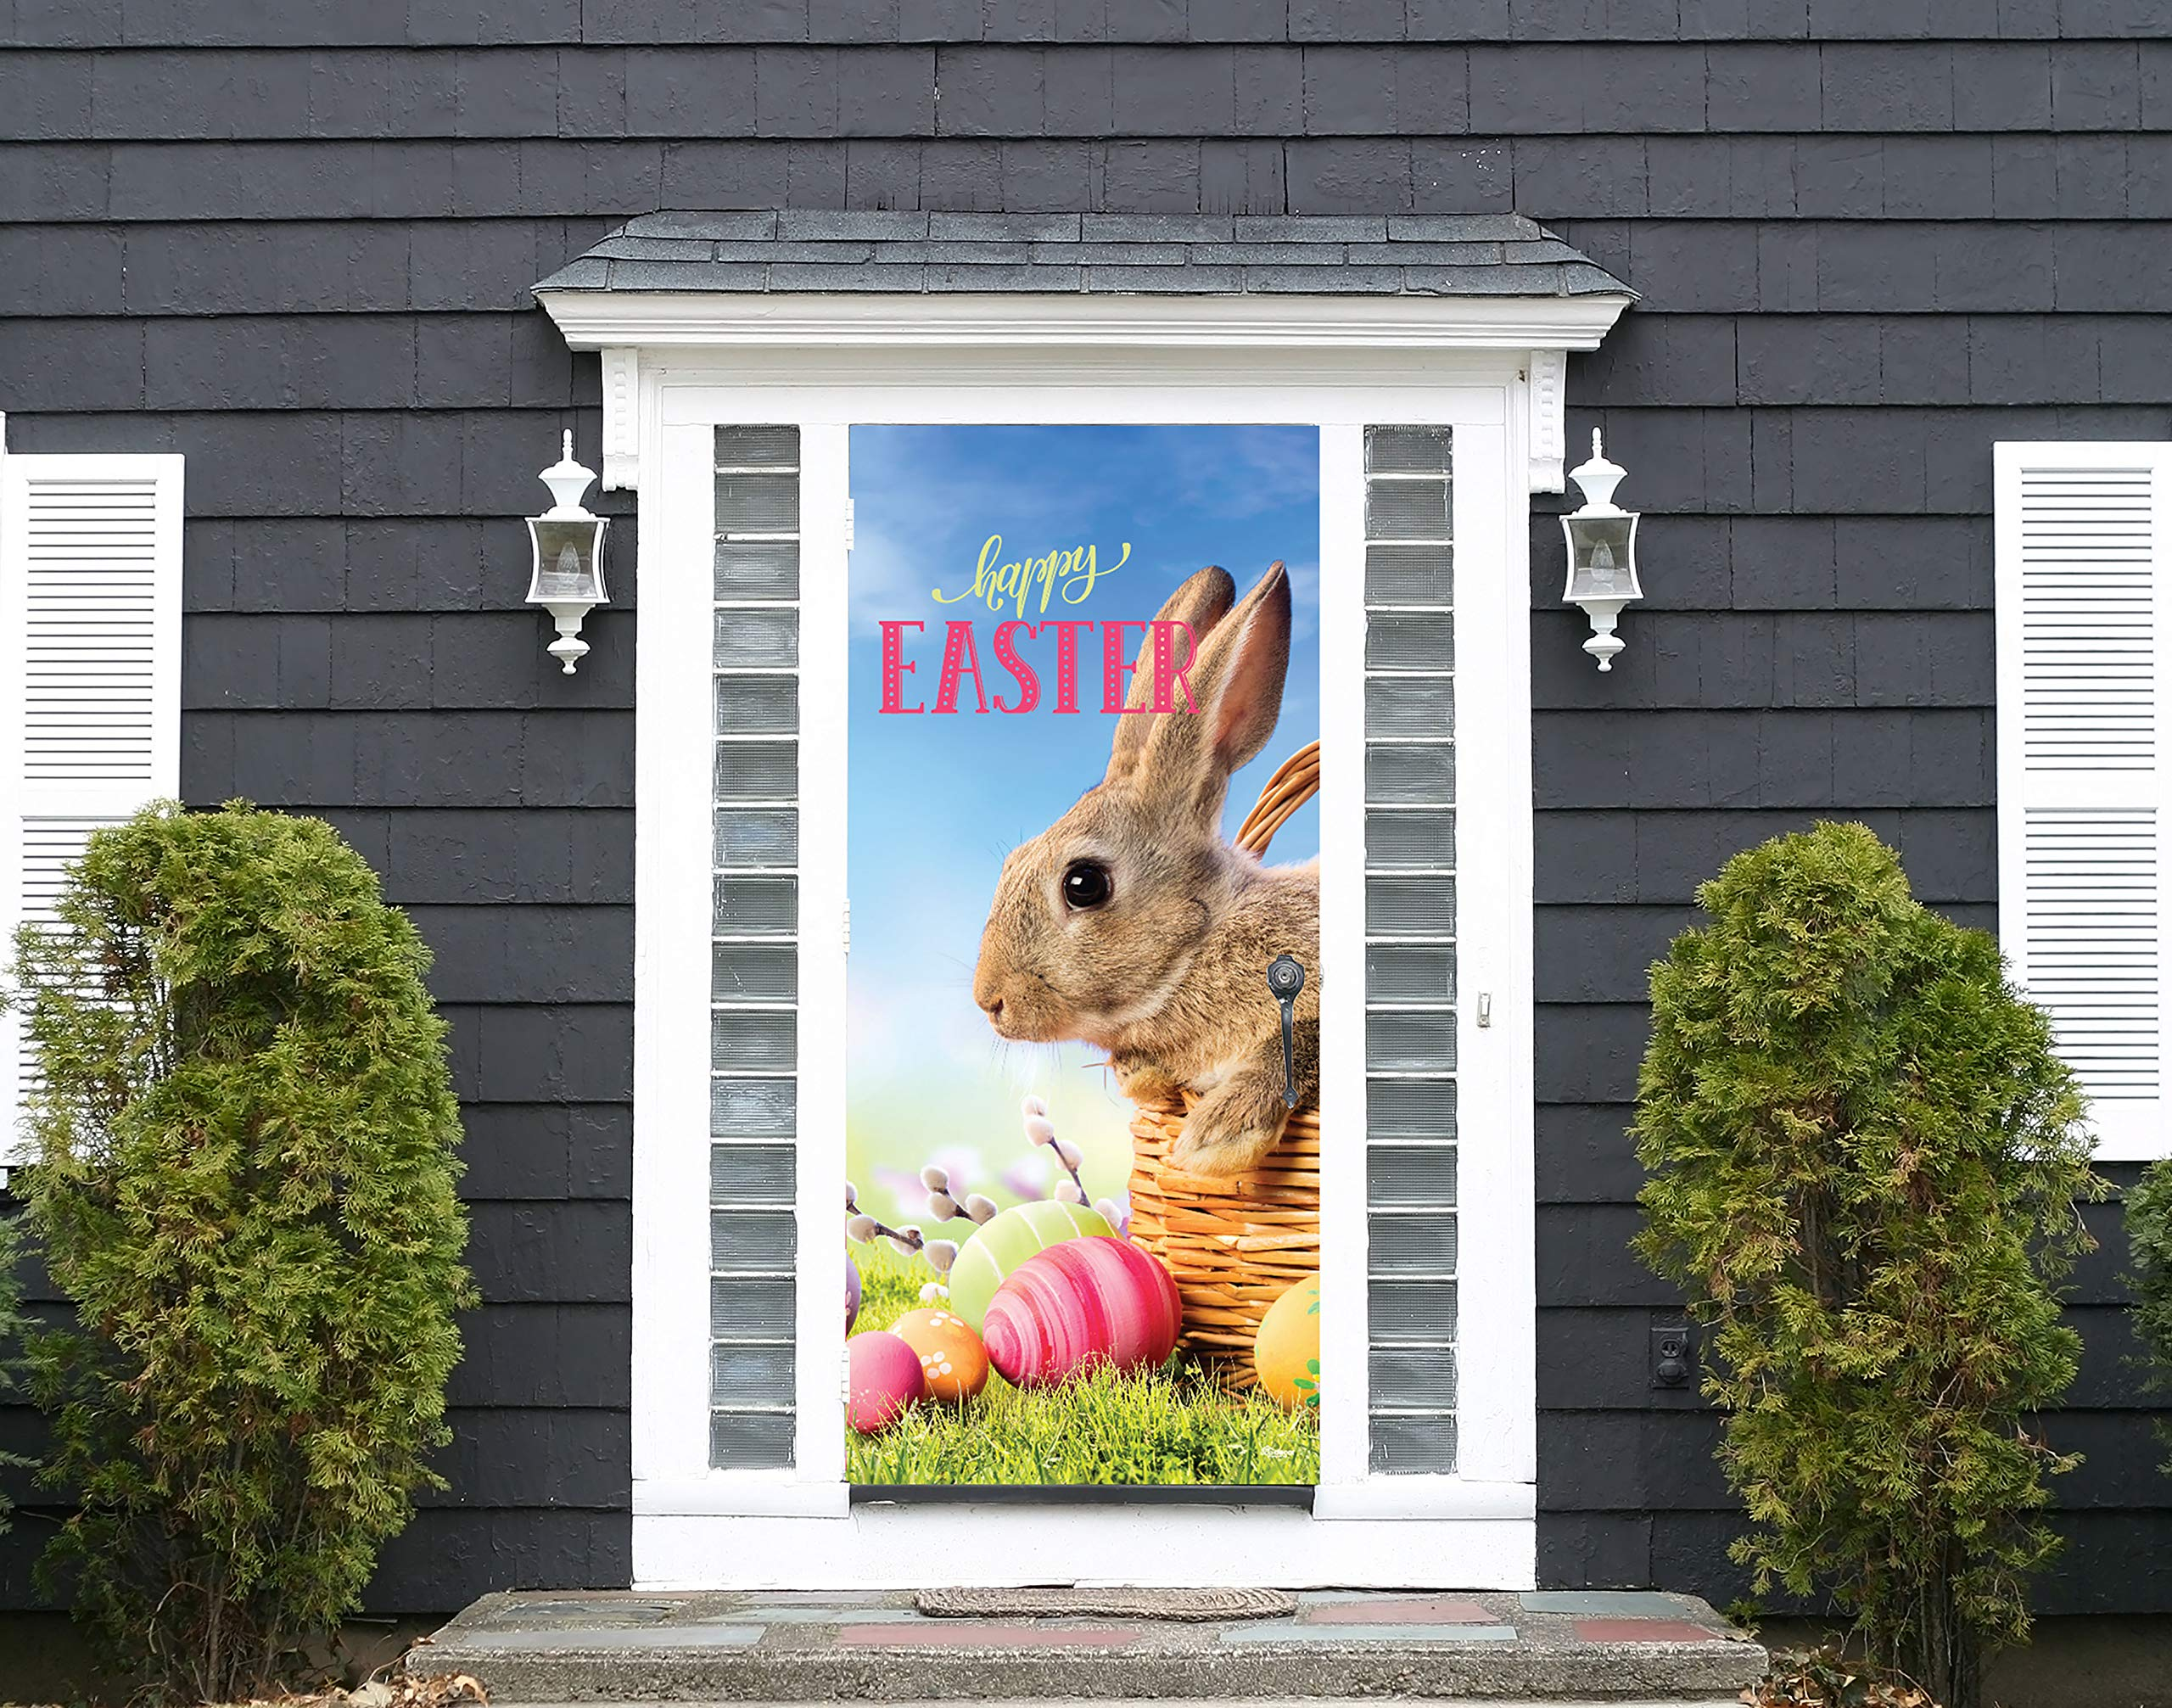 Victory Corps Happy Easter Bunny Basket - Holiday Front Door Banner Mural Sign Décor 36'' x 80'' Front Door - The Original Holiday Front Door Banner Decor